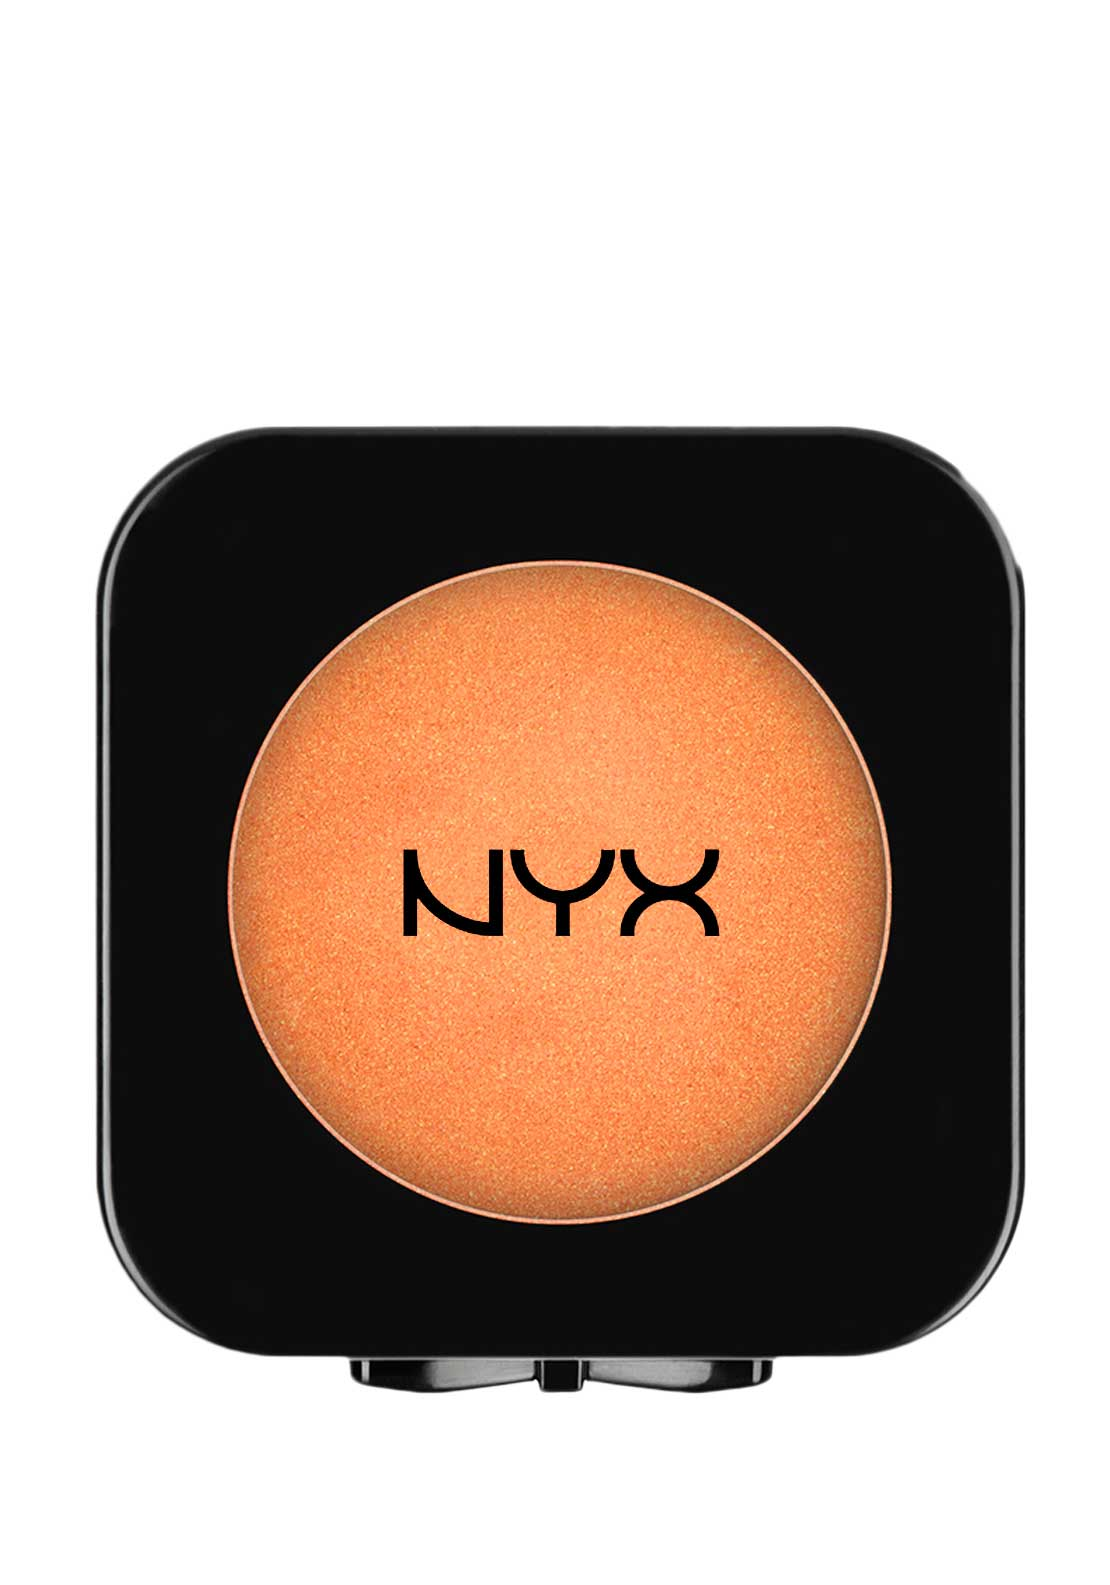 NYX Make Up HD Blusher, Soft Spoken, 12